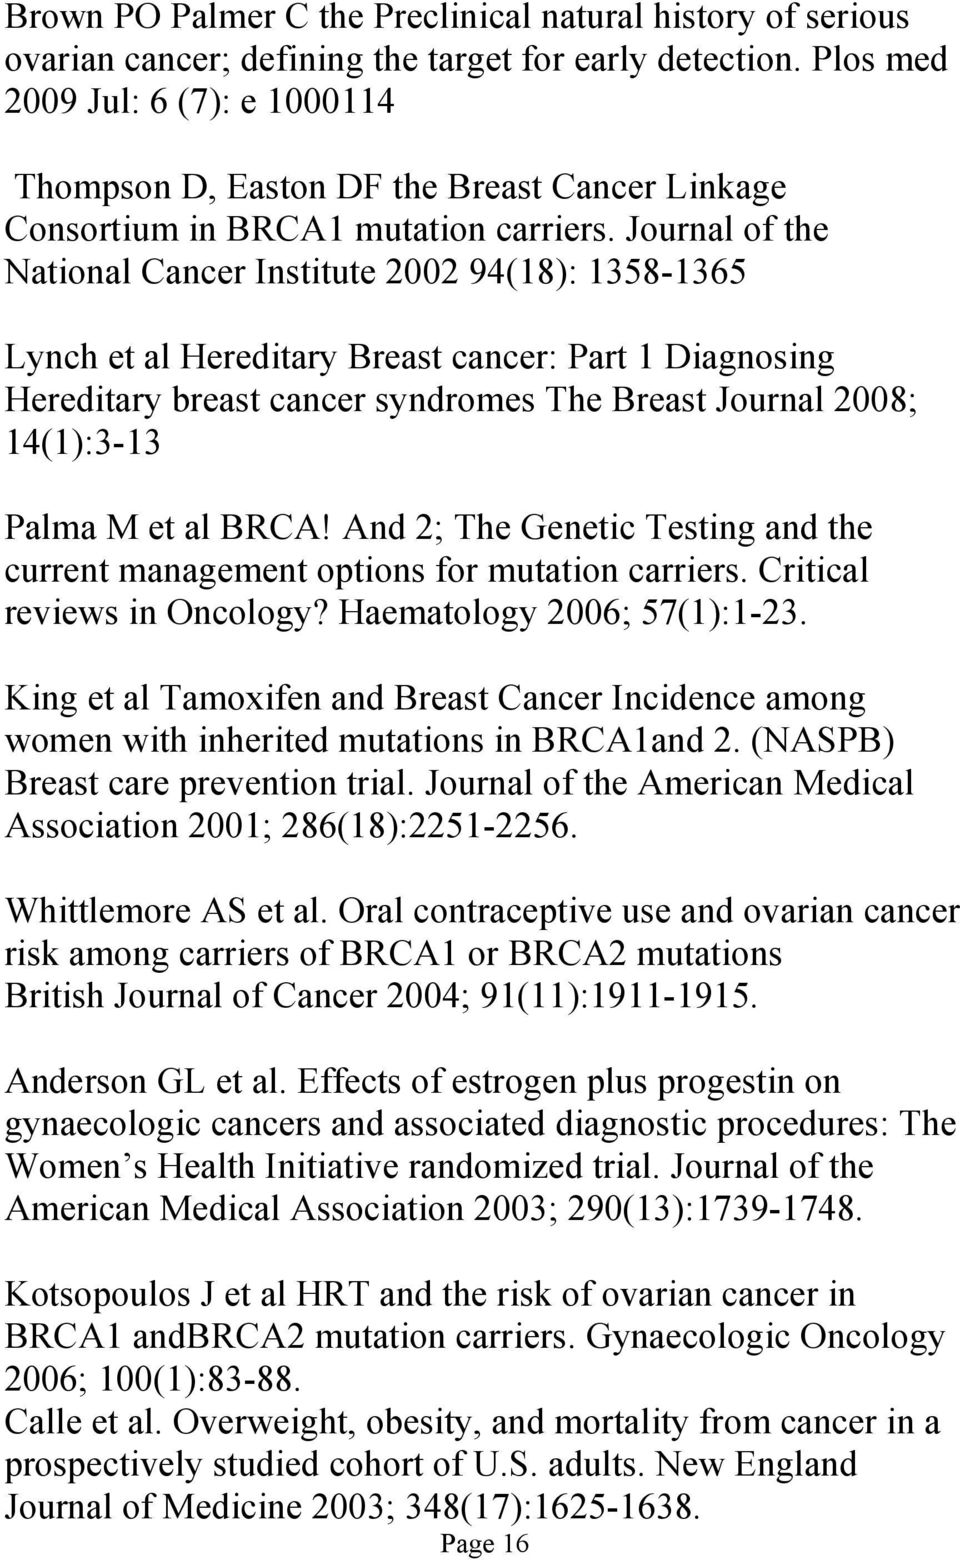 Journal of the National Cancer Institute 2002 94(18): 1358-1365 Lynch et al Hereditary Breast cancer: Part 1 Diagnosing Hereditary breast cancer syndromes The Breast Journal 2008; 14(1):3-13 Palma M